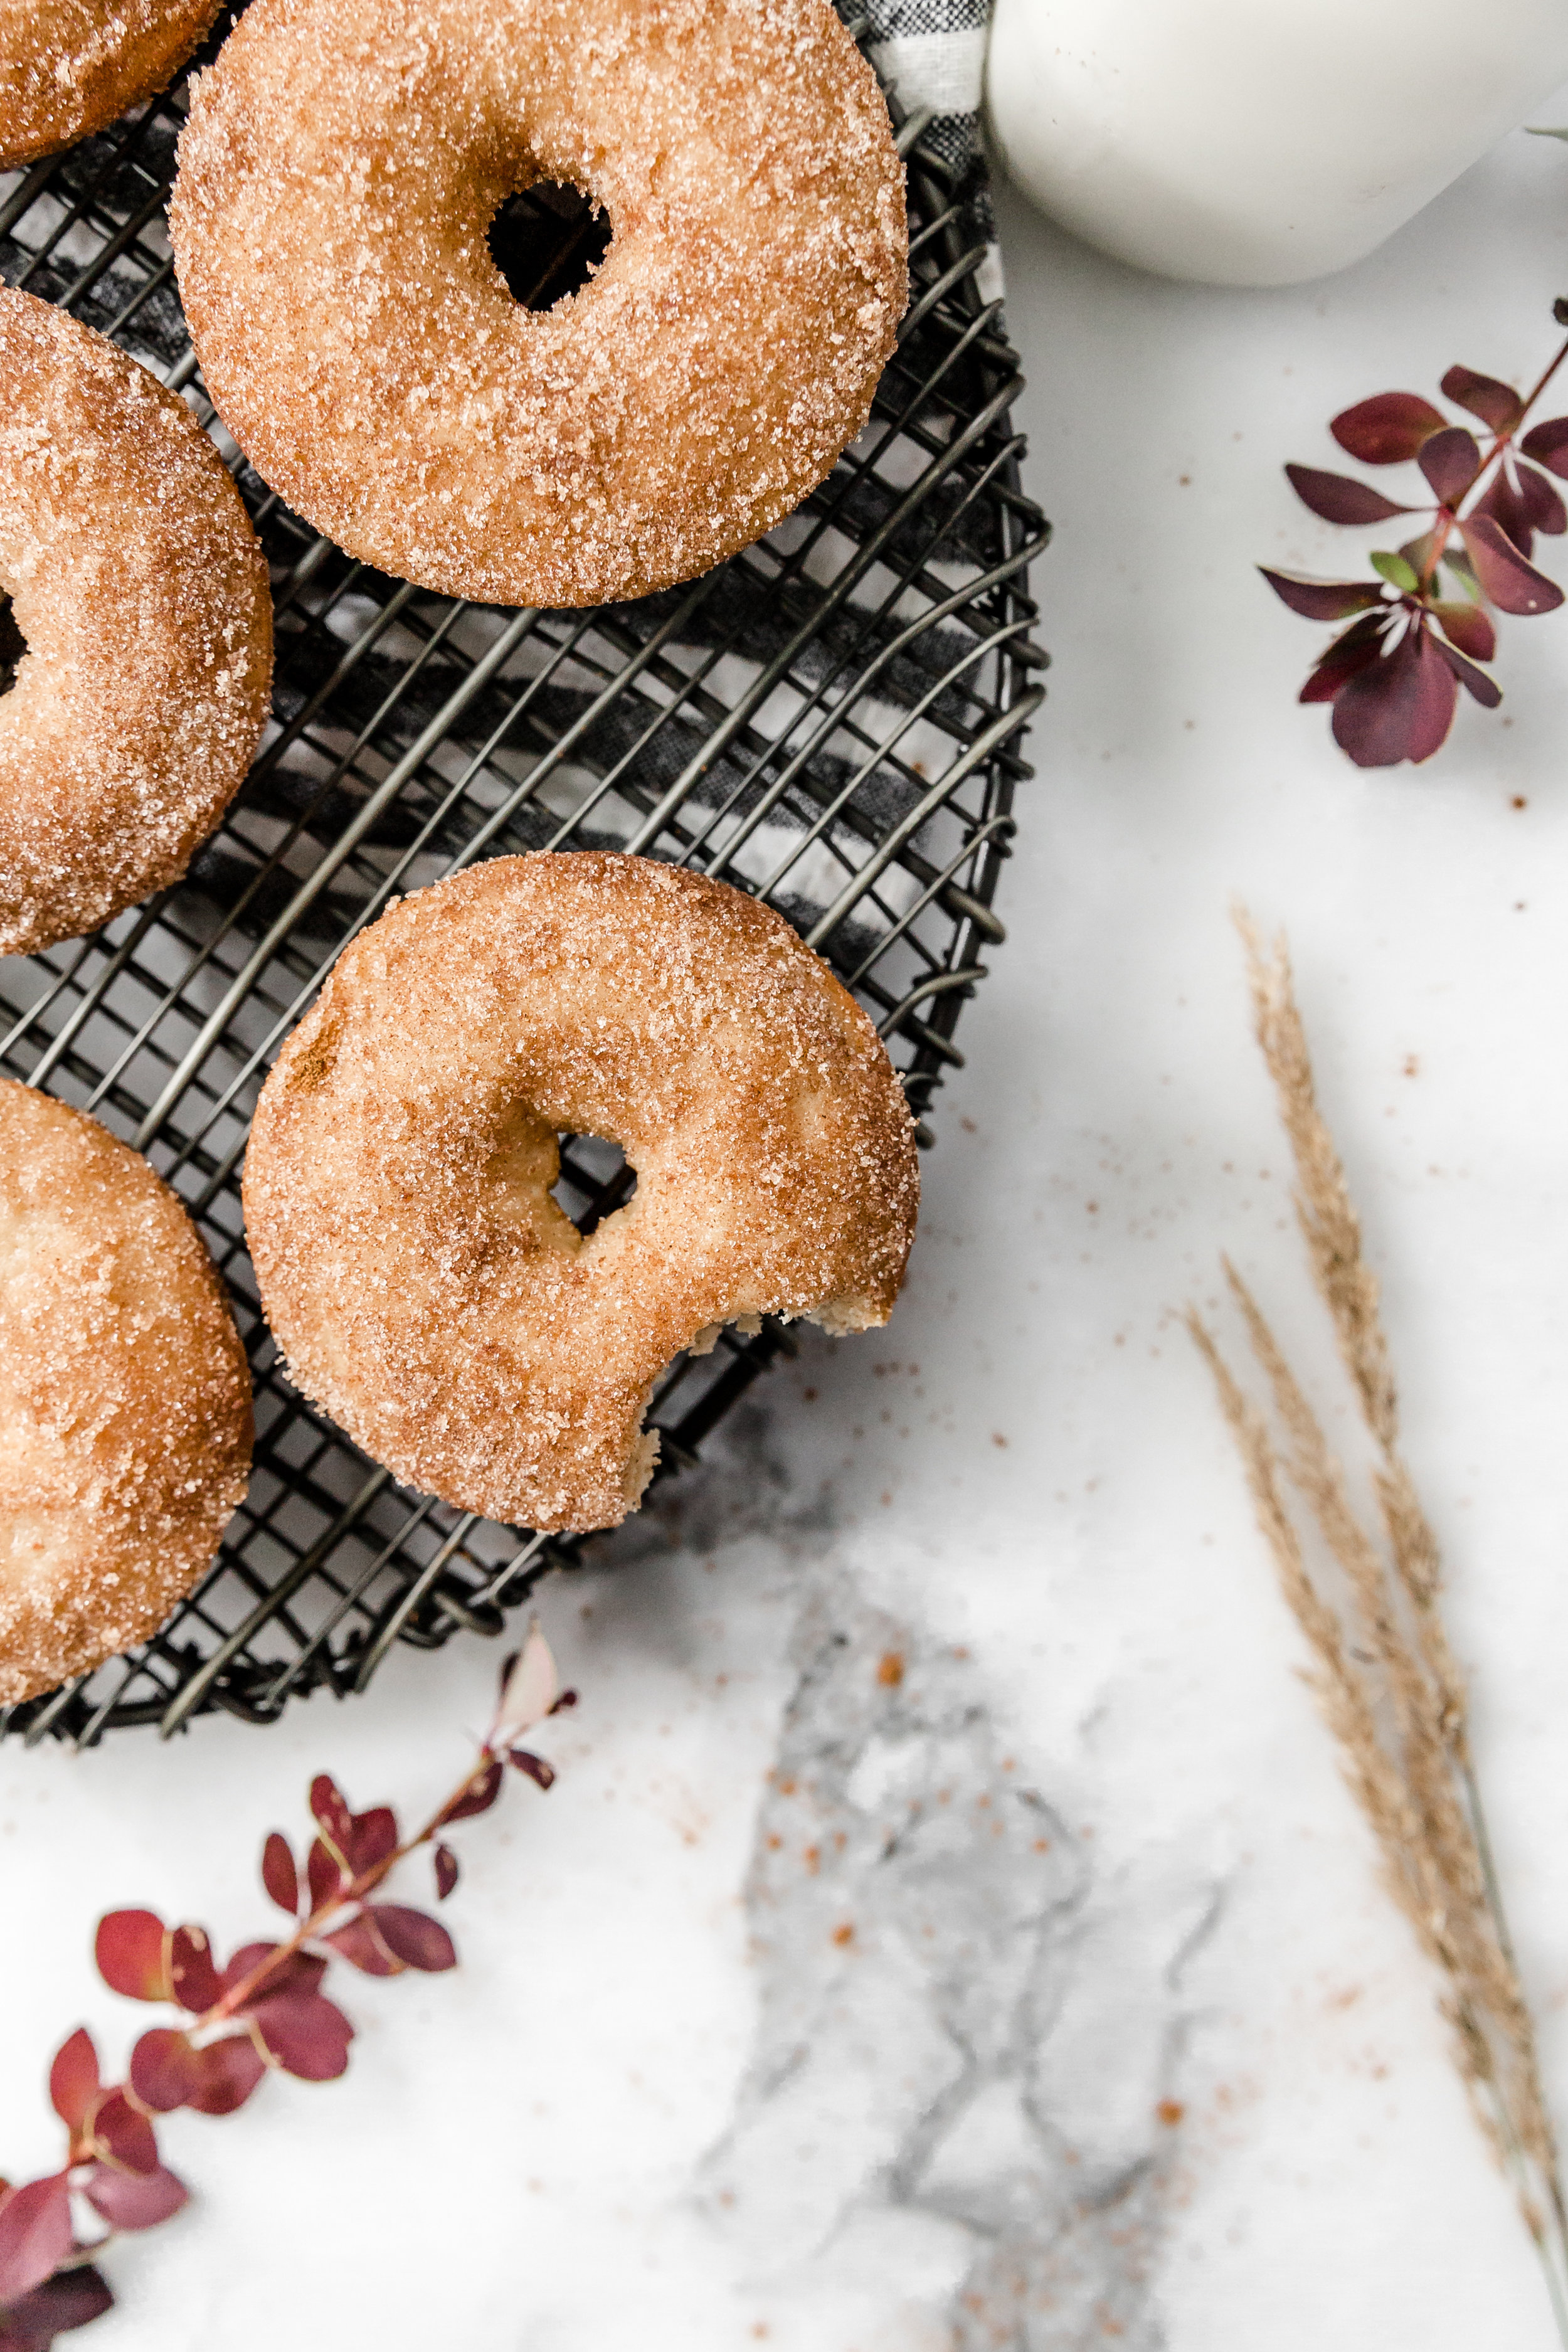 Baked Apple Cider Donuts || To Salt & See. These donuts are made with reduced apple cider to give them their distinct taste. Unlike most donuts, they are not fried, but rather they are baked (read: healthier than regular donuts). Once baked these donuts are coated with melted butter and cinnamon sugar. They are very easy to make, and are PERFECT for these upcoming crisp days.